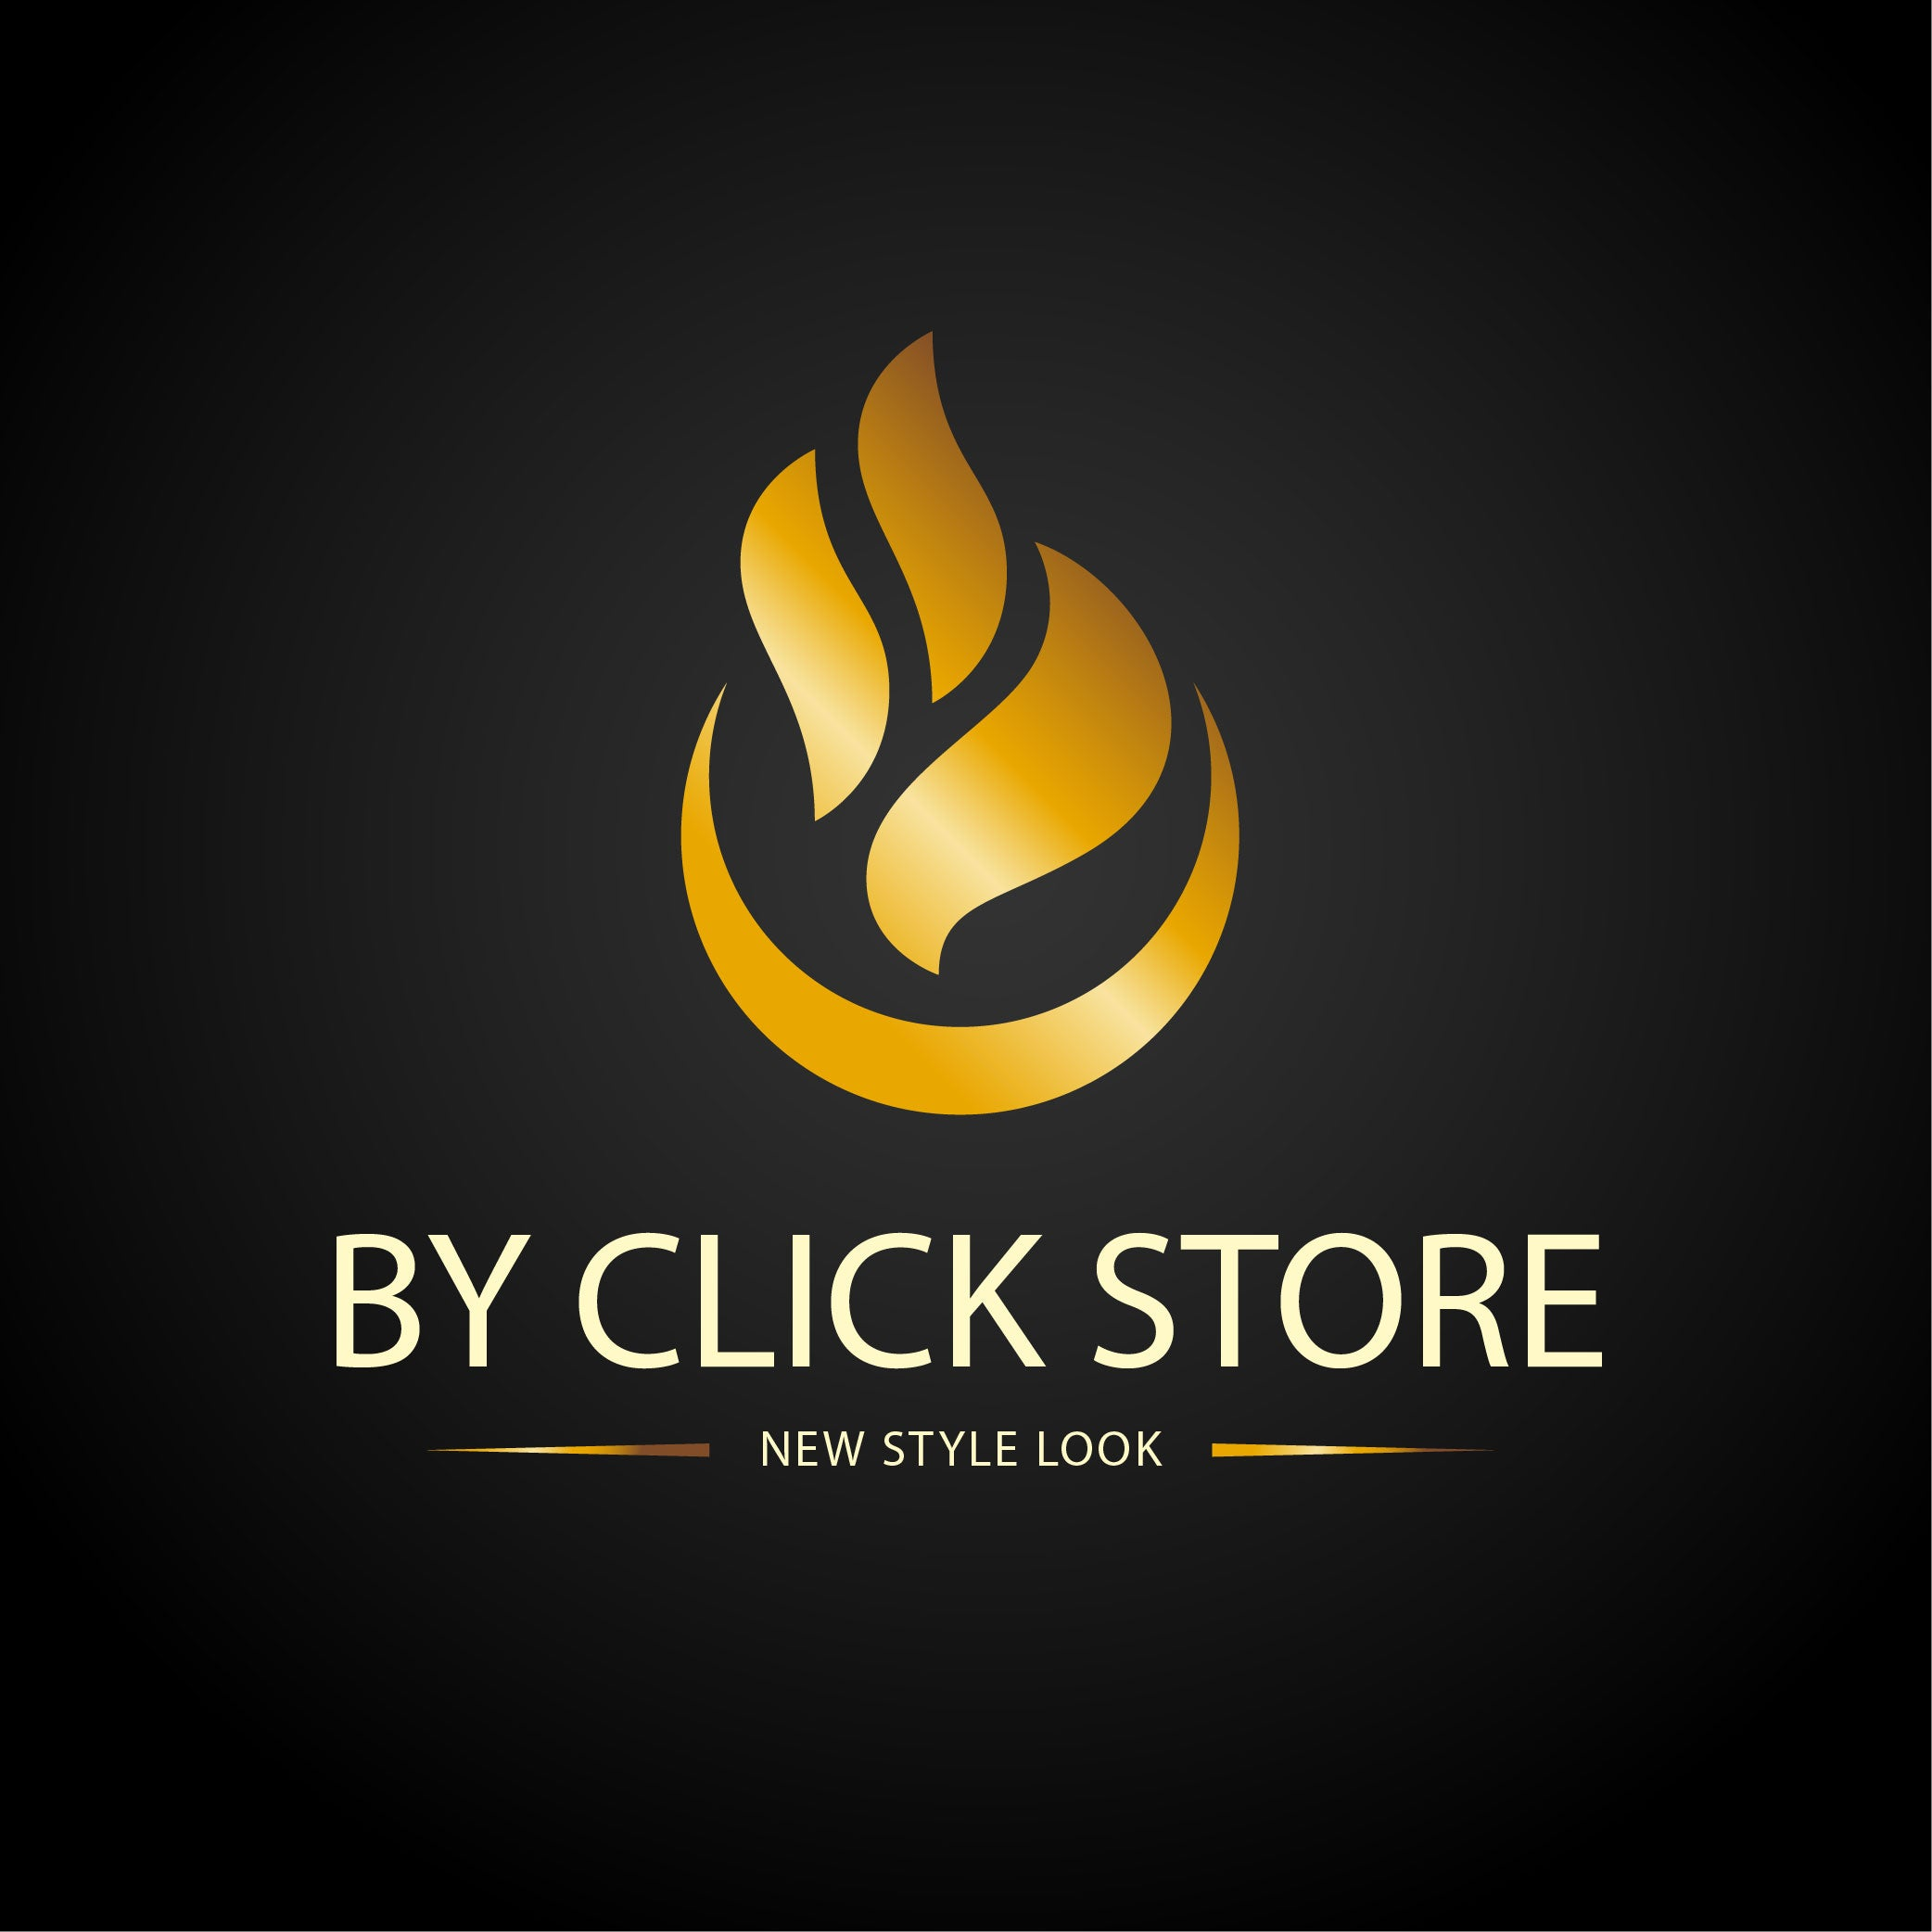 By Click Store